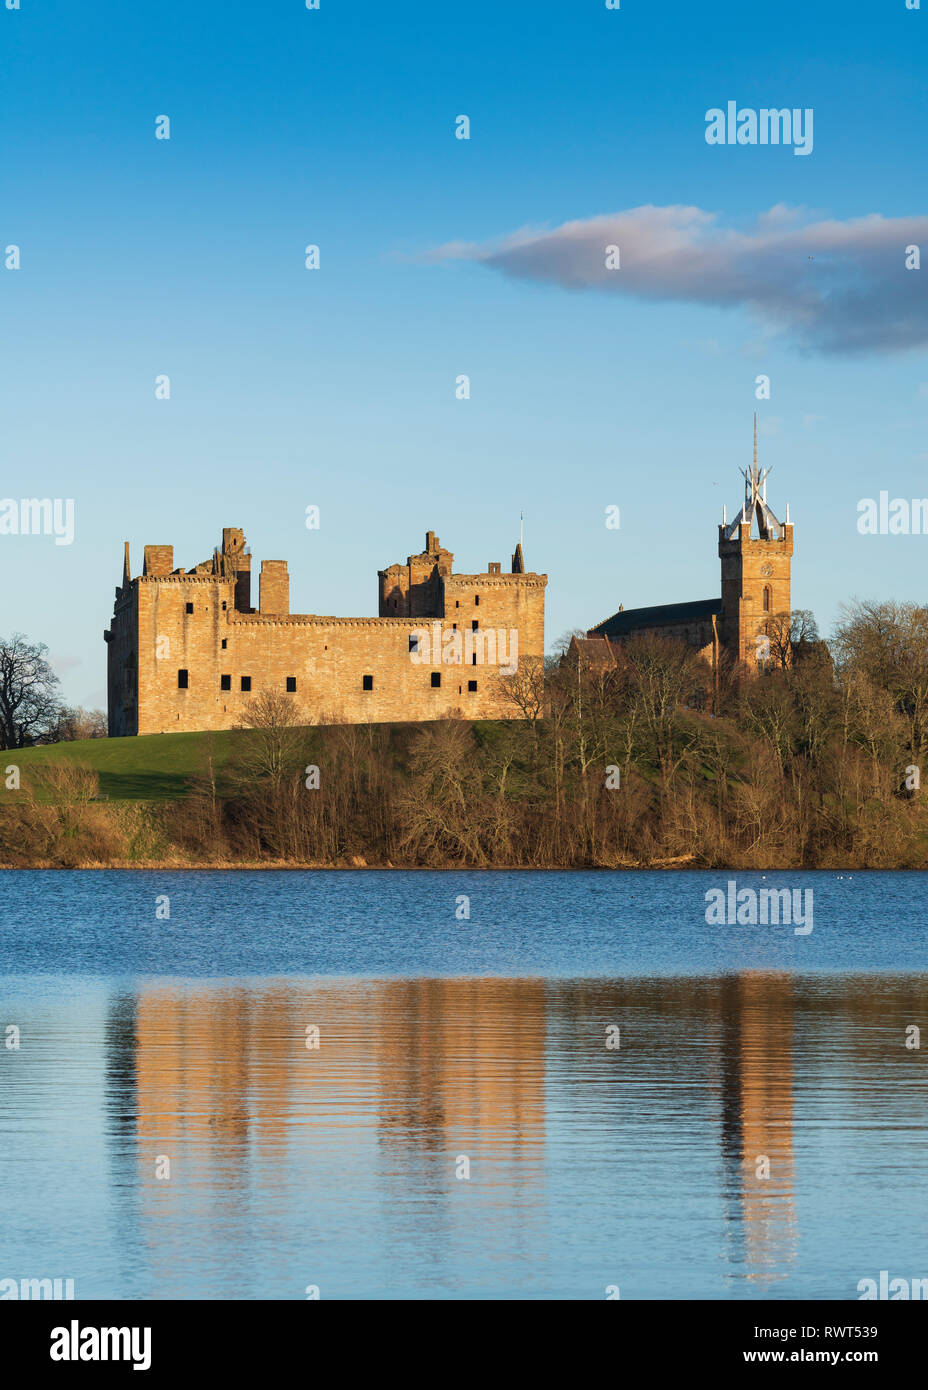 View of Linlithgow Palace in Linlithgow, West Lothian, Scotland, UK. Birthplace of Mary Queen of Scots. Stock Photo